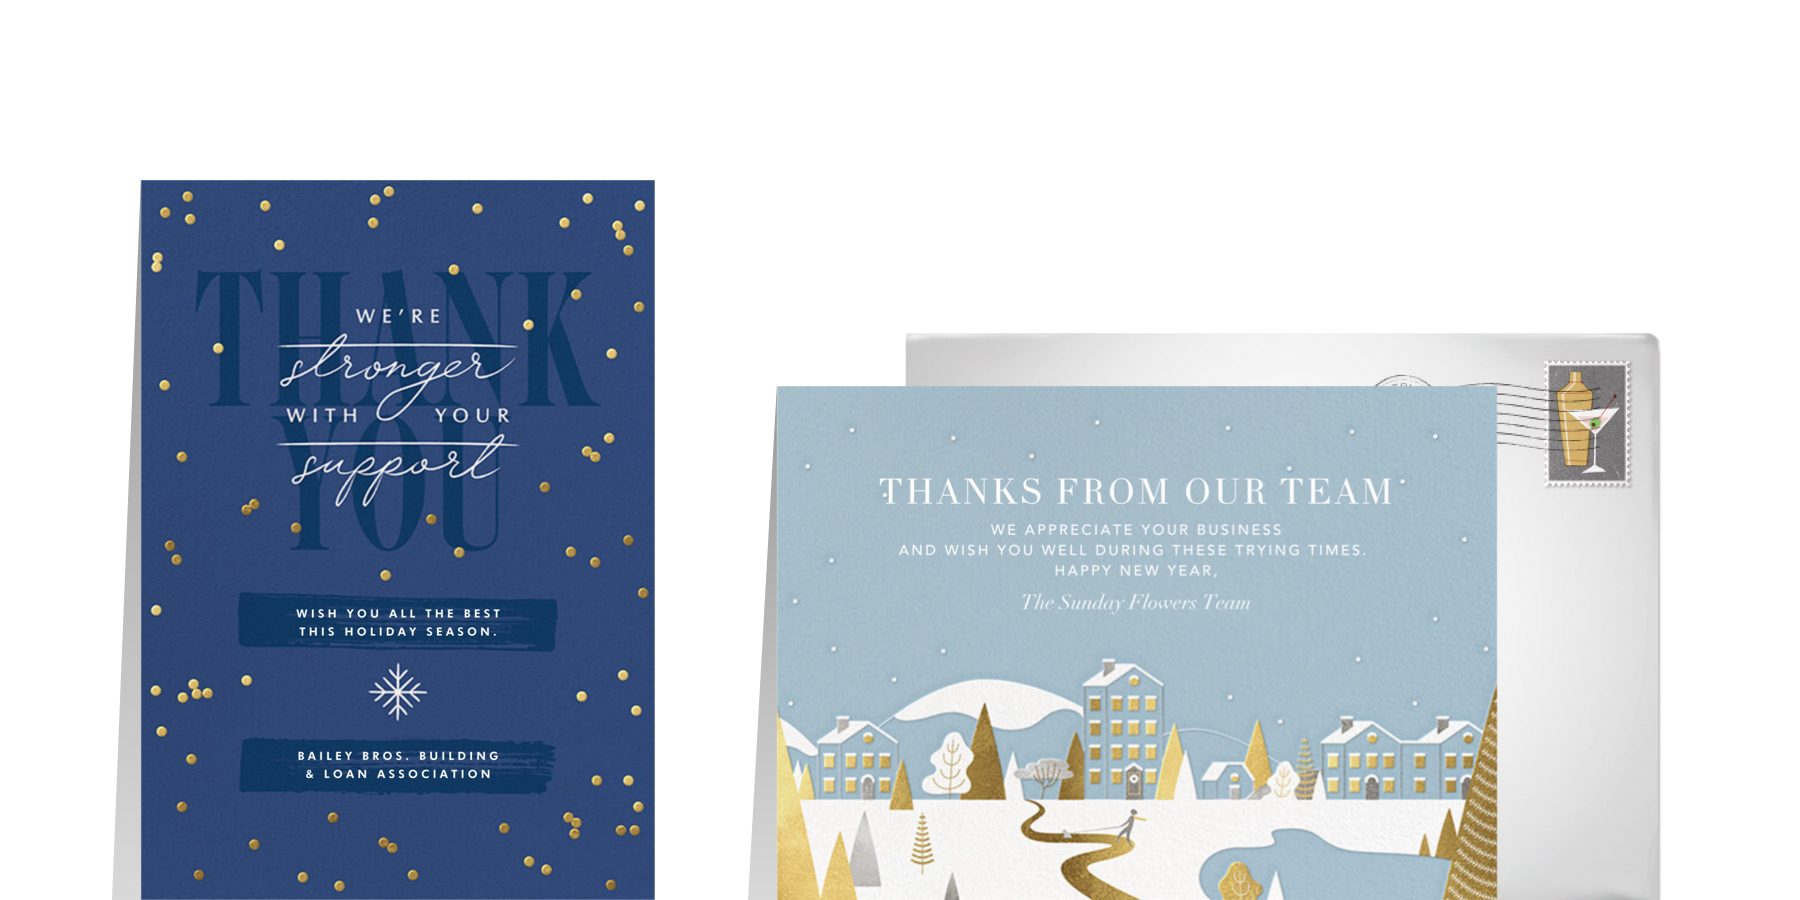 small business greeting cards from Paperless Post for the 2020 holiday season